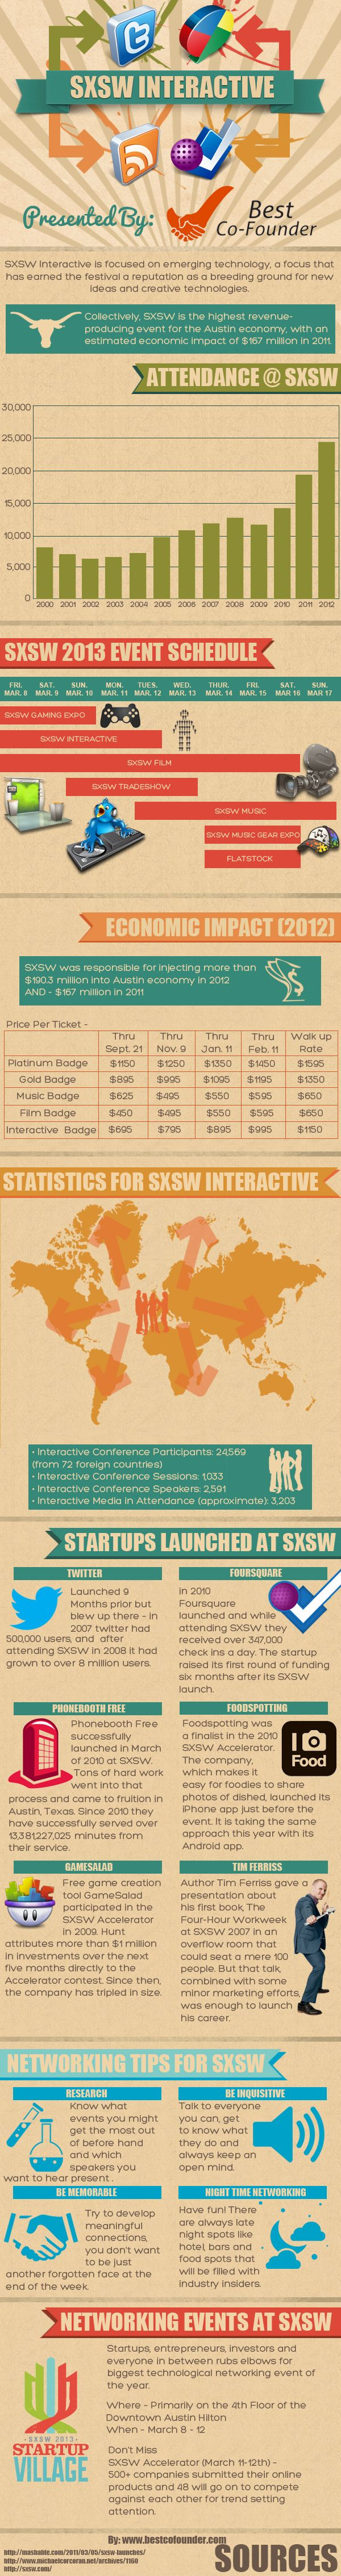 Who Will Be The 'Twitter' Of SXSW 2013? [INFOGRAPHIC] - via AllTwitter 3-7-2013